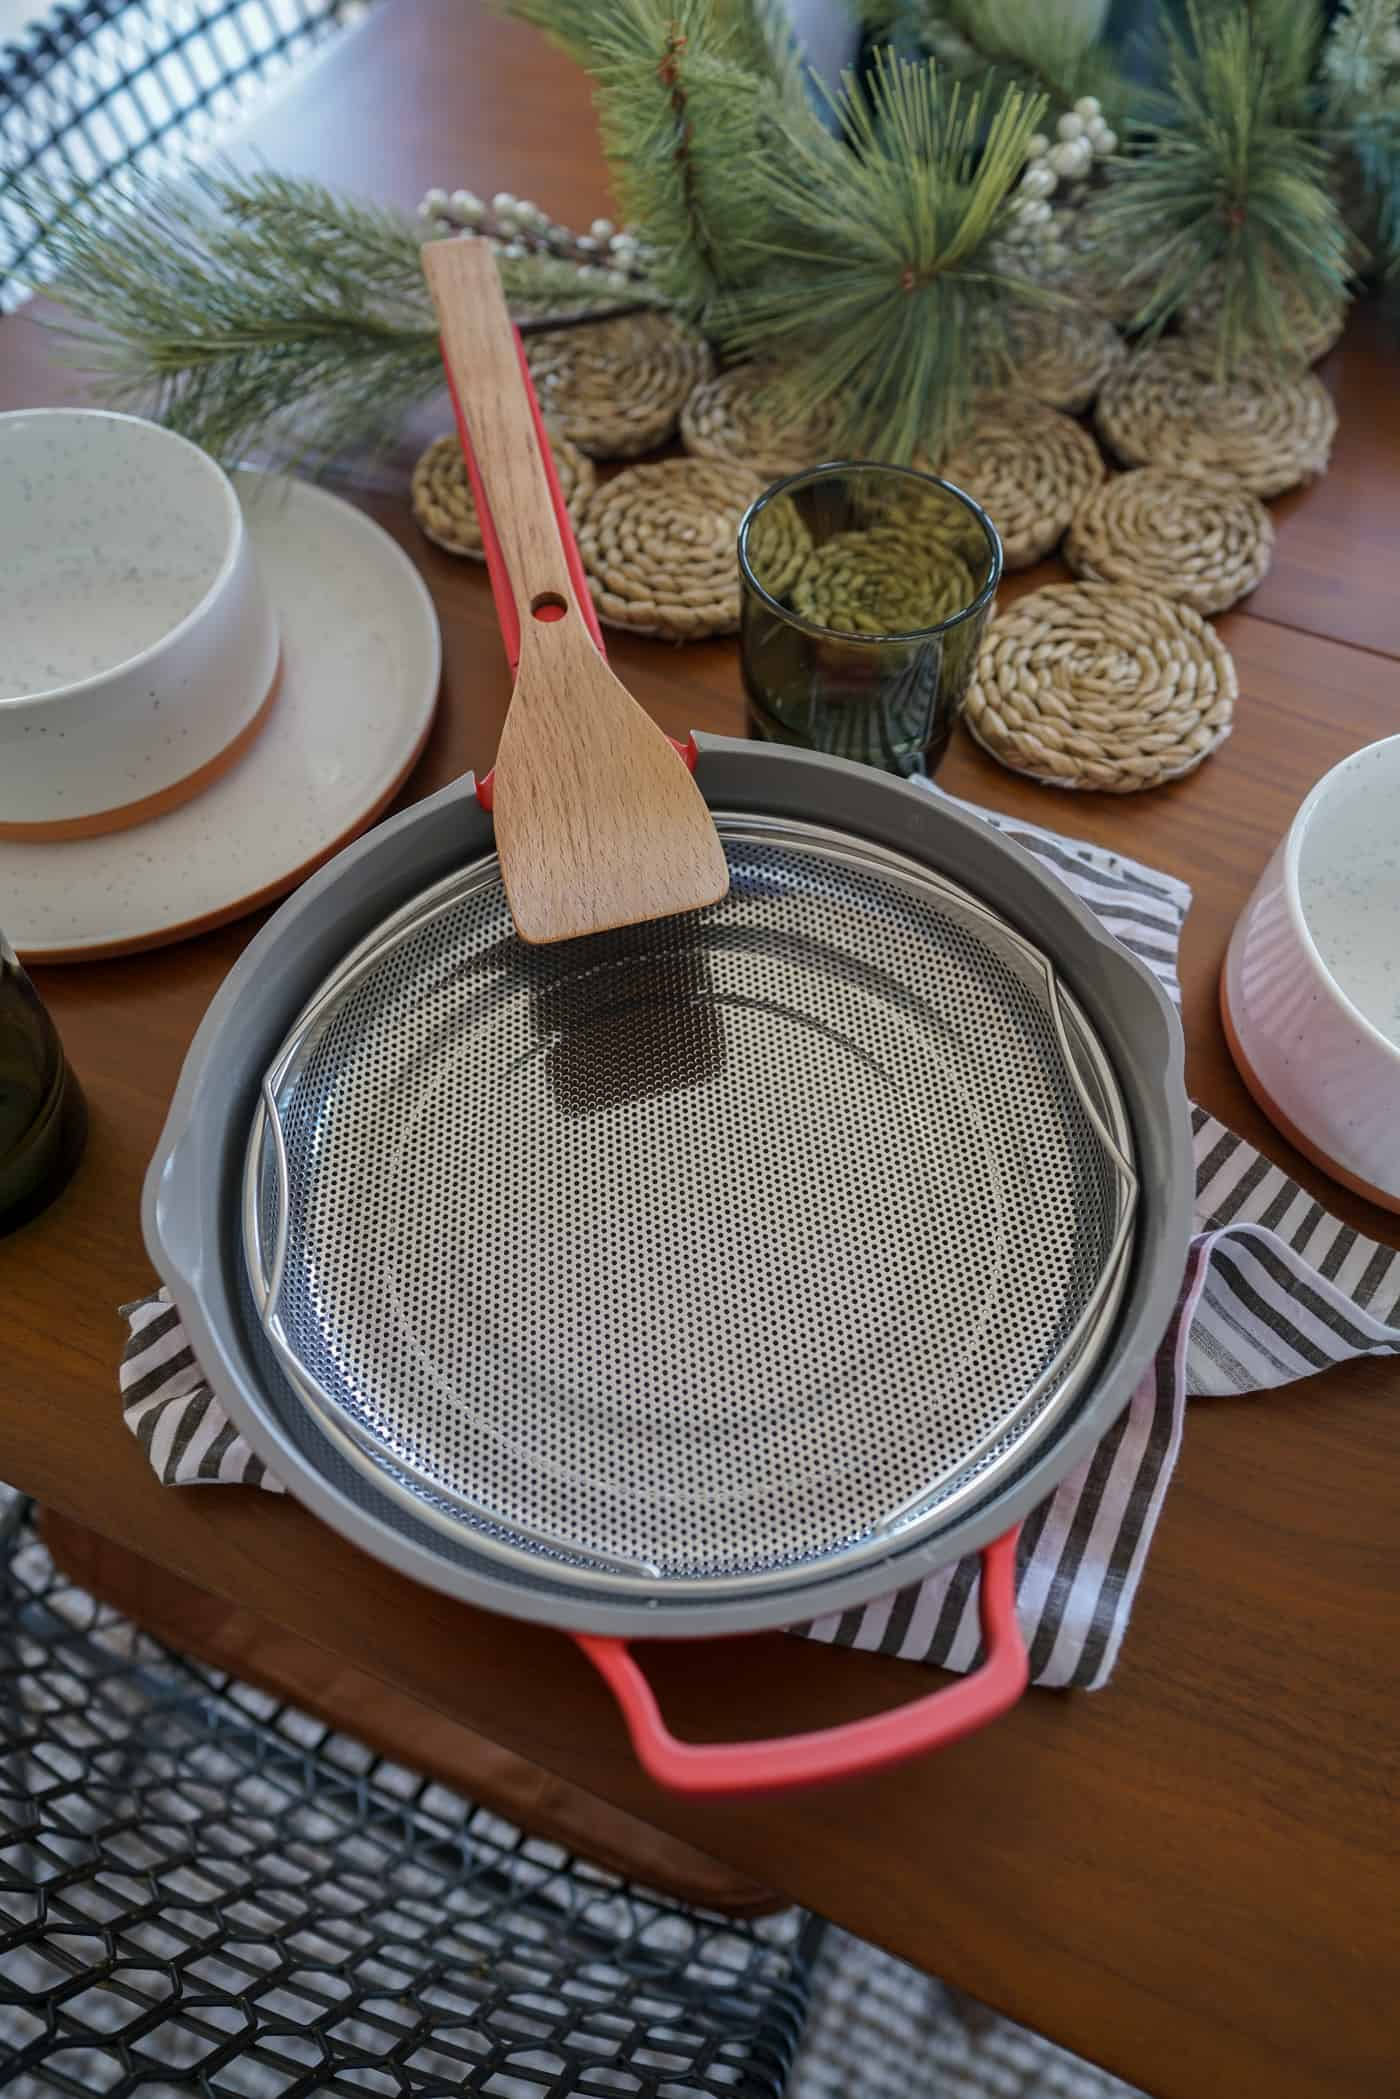 The Aways Pan by Our Place with steel colander and beechwood spoon placed on a dining room table